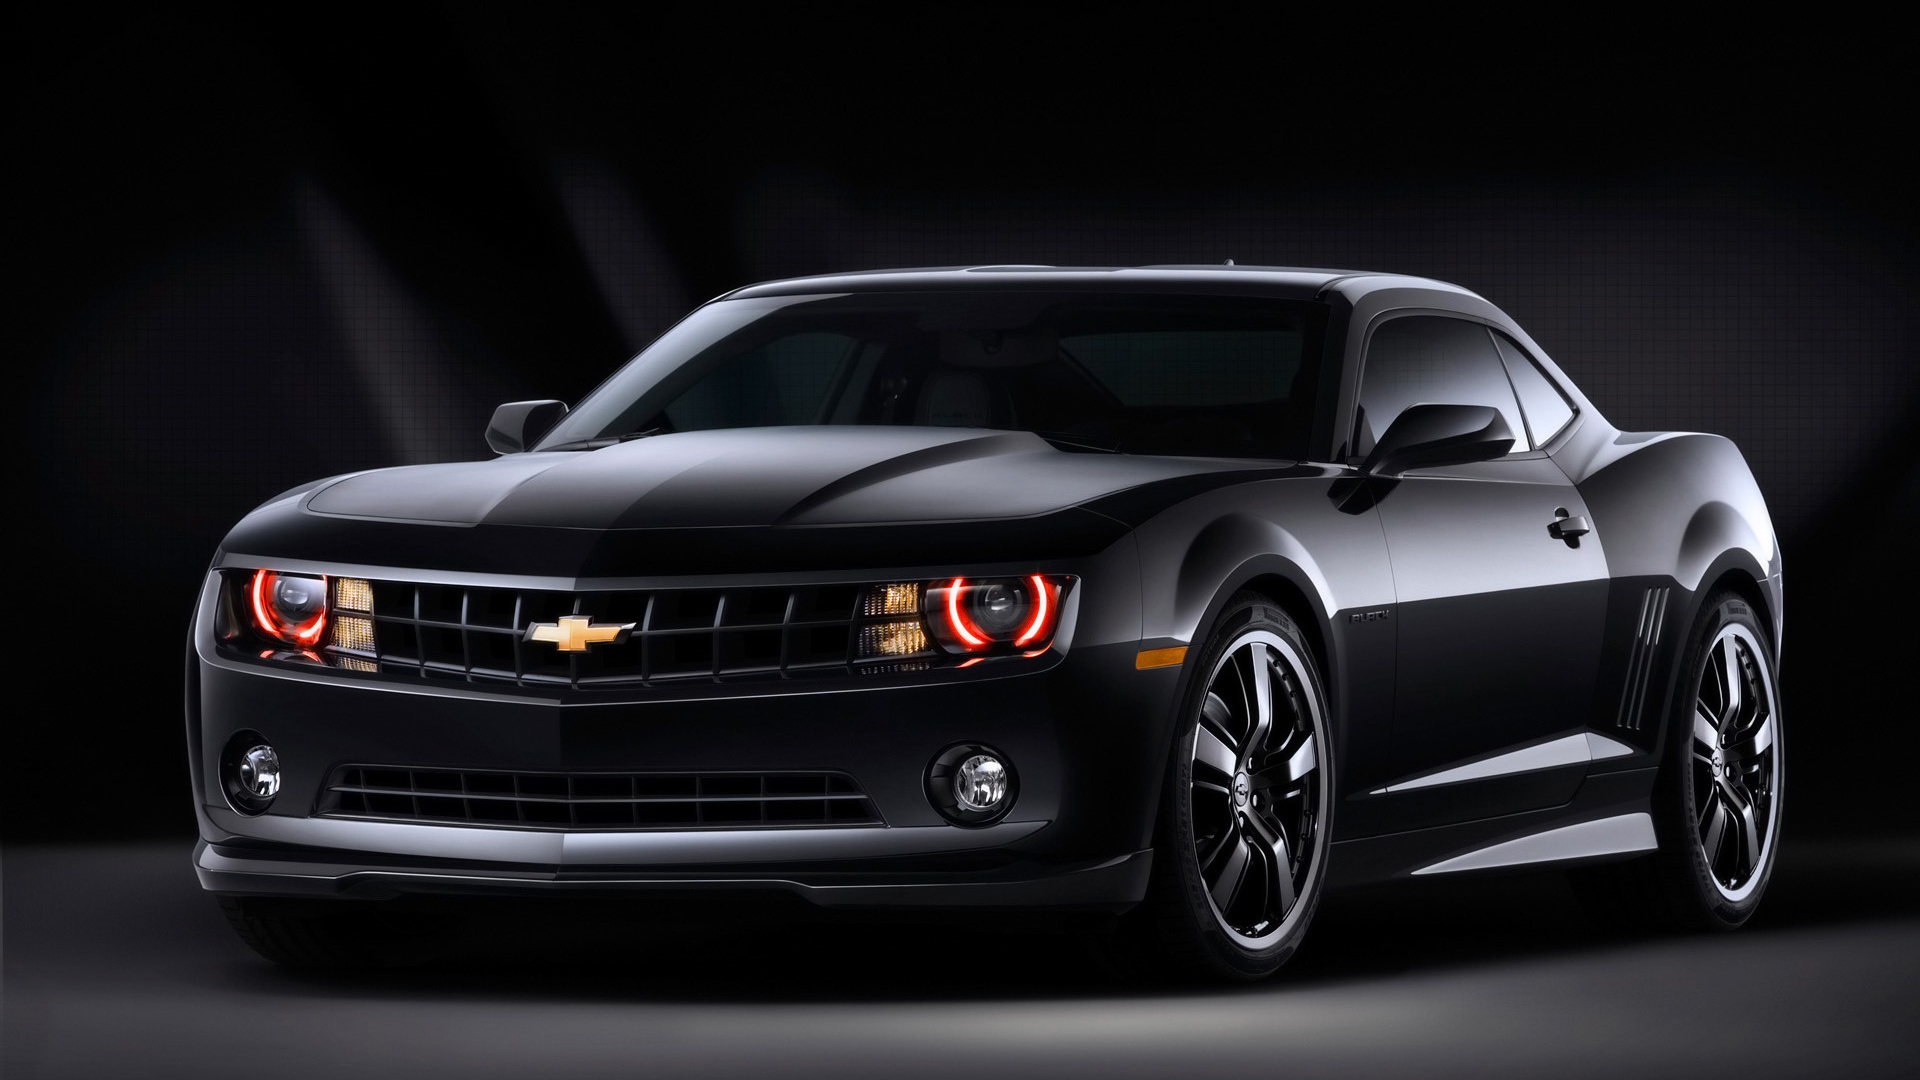 Muscle Cars wallpaper Muscle Cars hd wallpaper background desktop 1920x1080